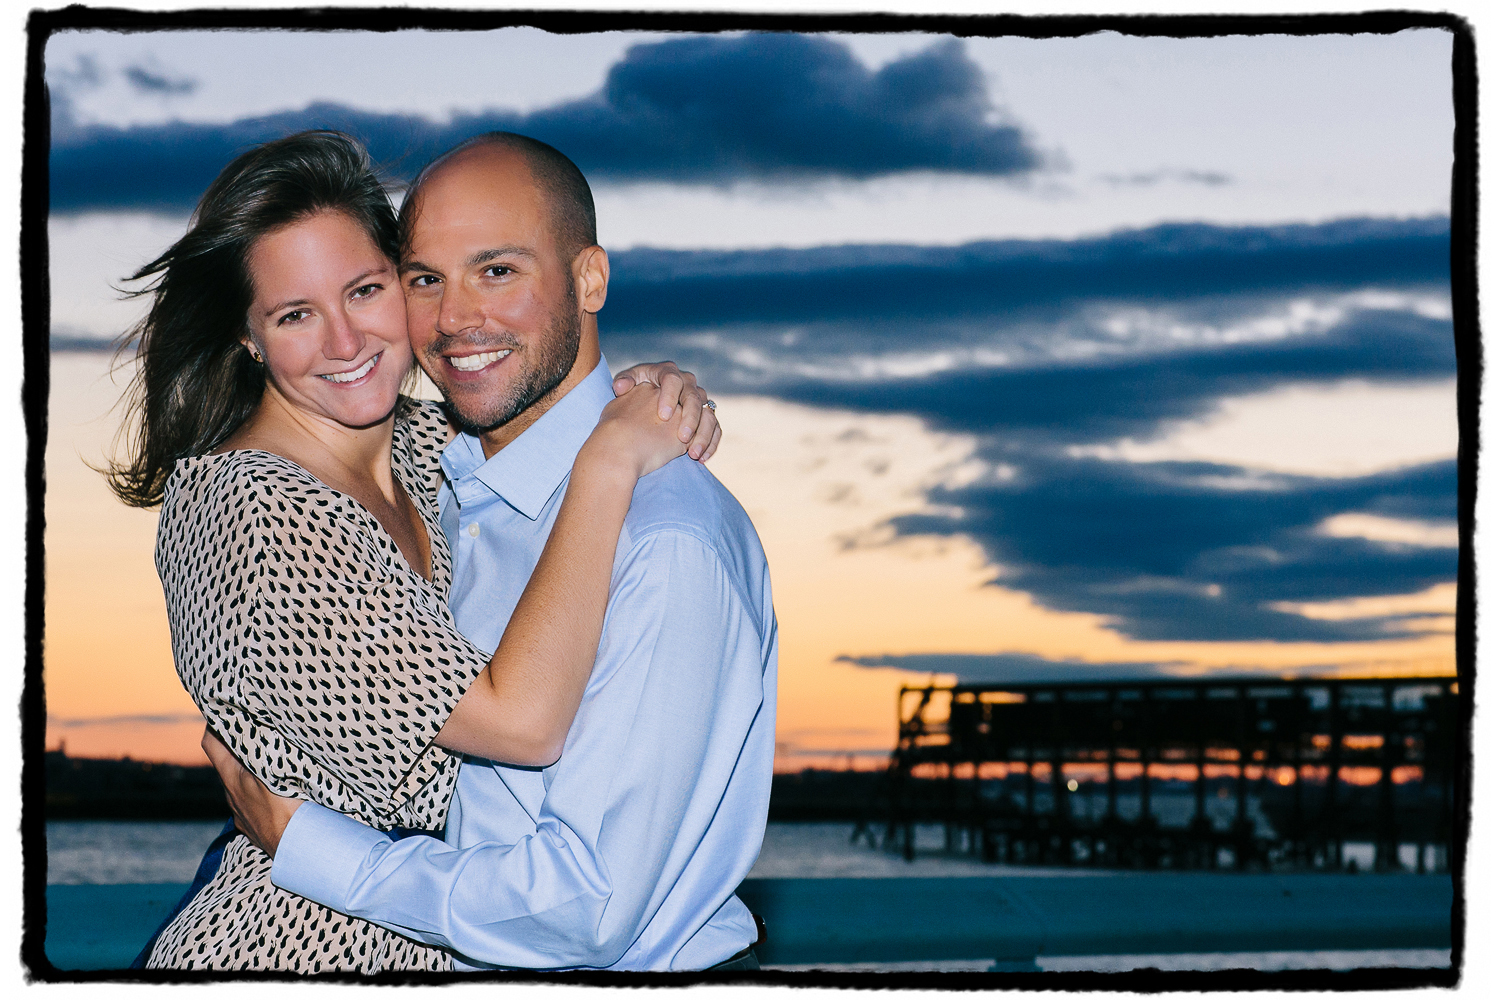 Engagement Portrait: Laura & Joel enjoy the sunset views from the Red Hook waterfront.